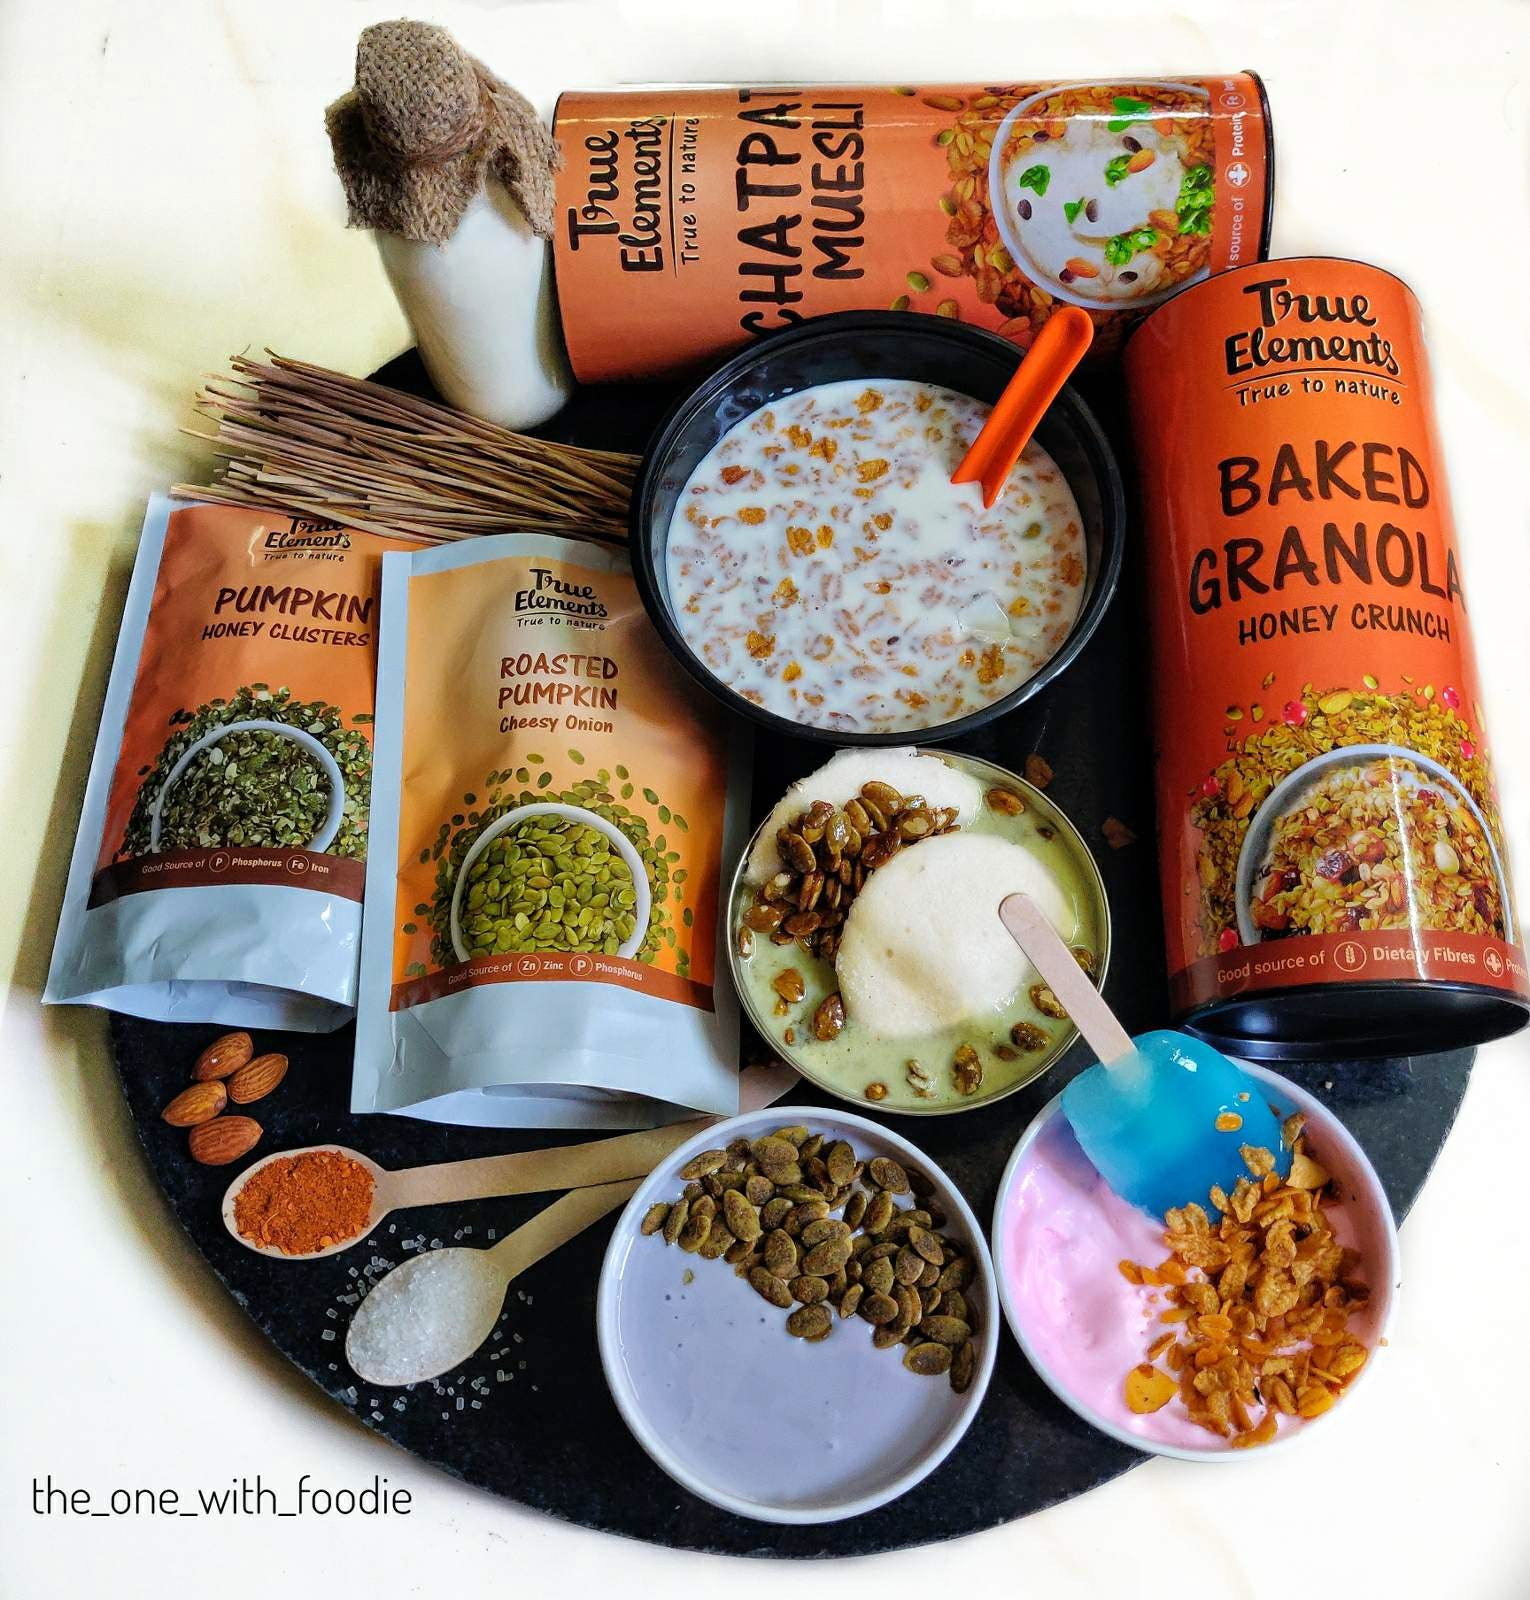 Order Away These Healthy Snacks With No Added Preservatives From True Elements